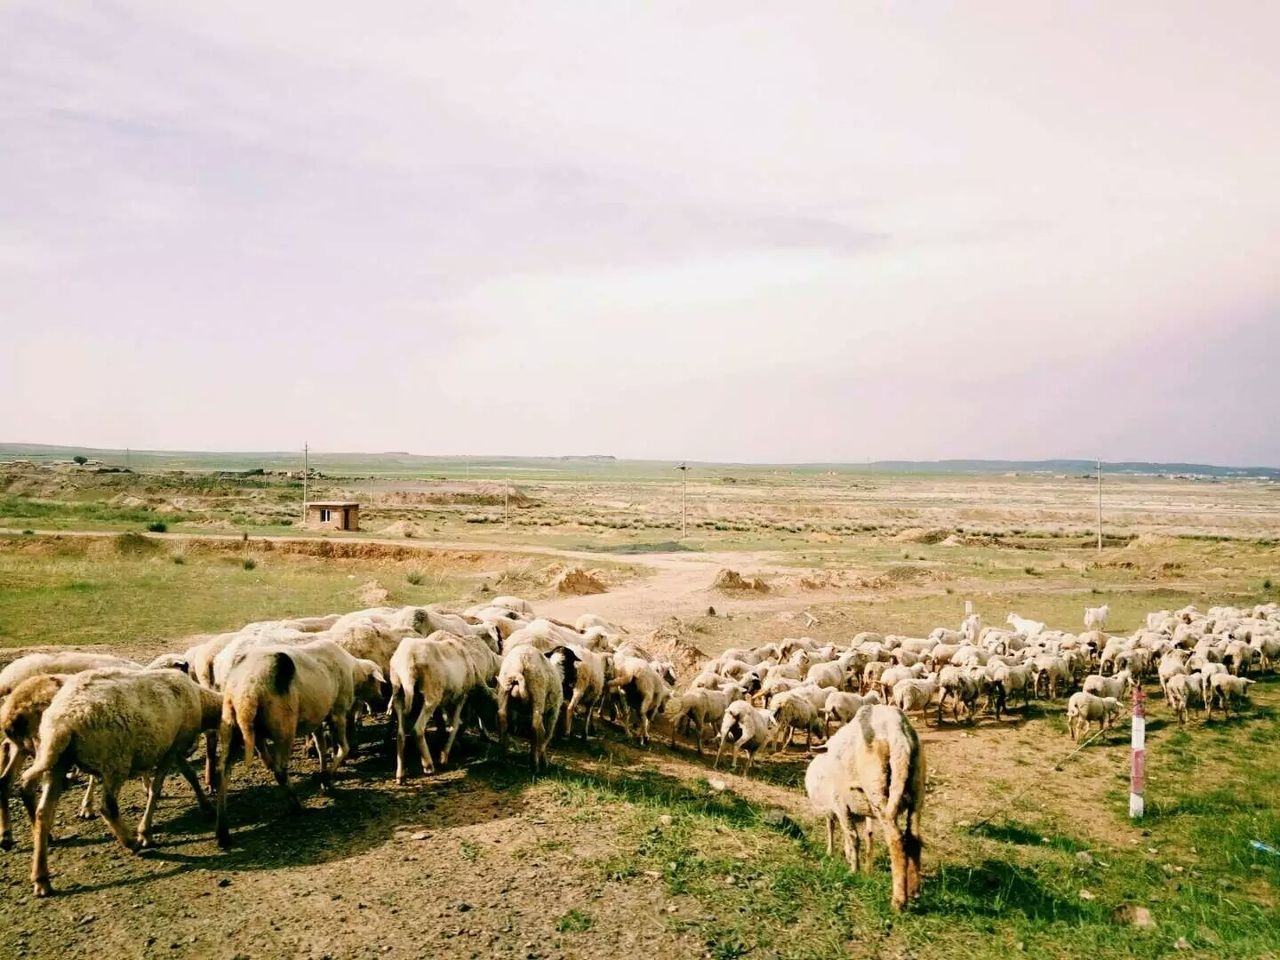 animal themes, domestic animals, livestock, mammal, grass, large group of animals, sky, landscape, nature, no people, grazing, outdoors, field, cloud - sky, sheep, beauty in nature, day, scenics, tranquility, flock of sheep, rural scene